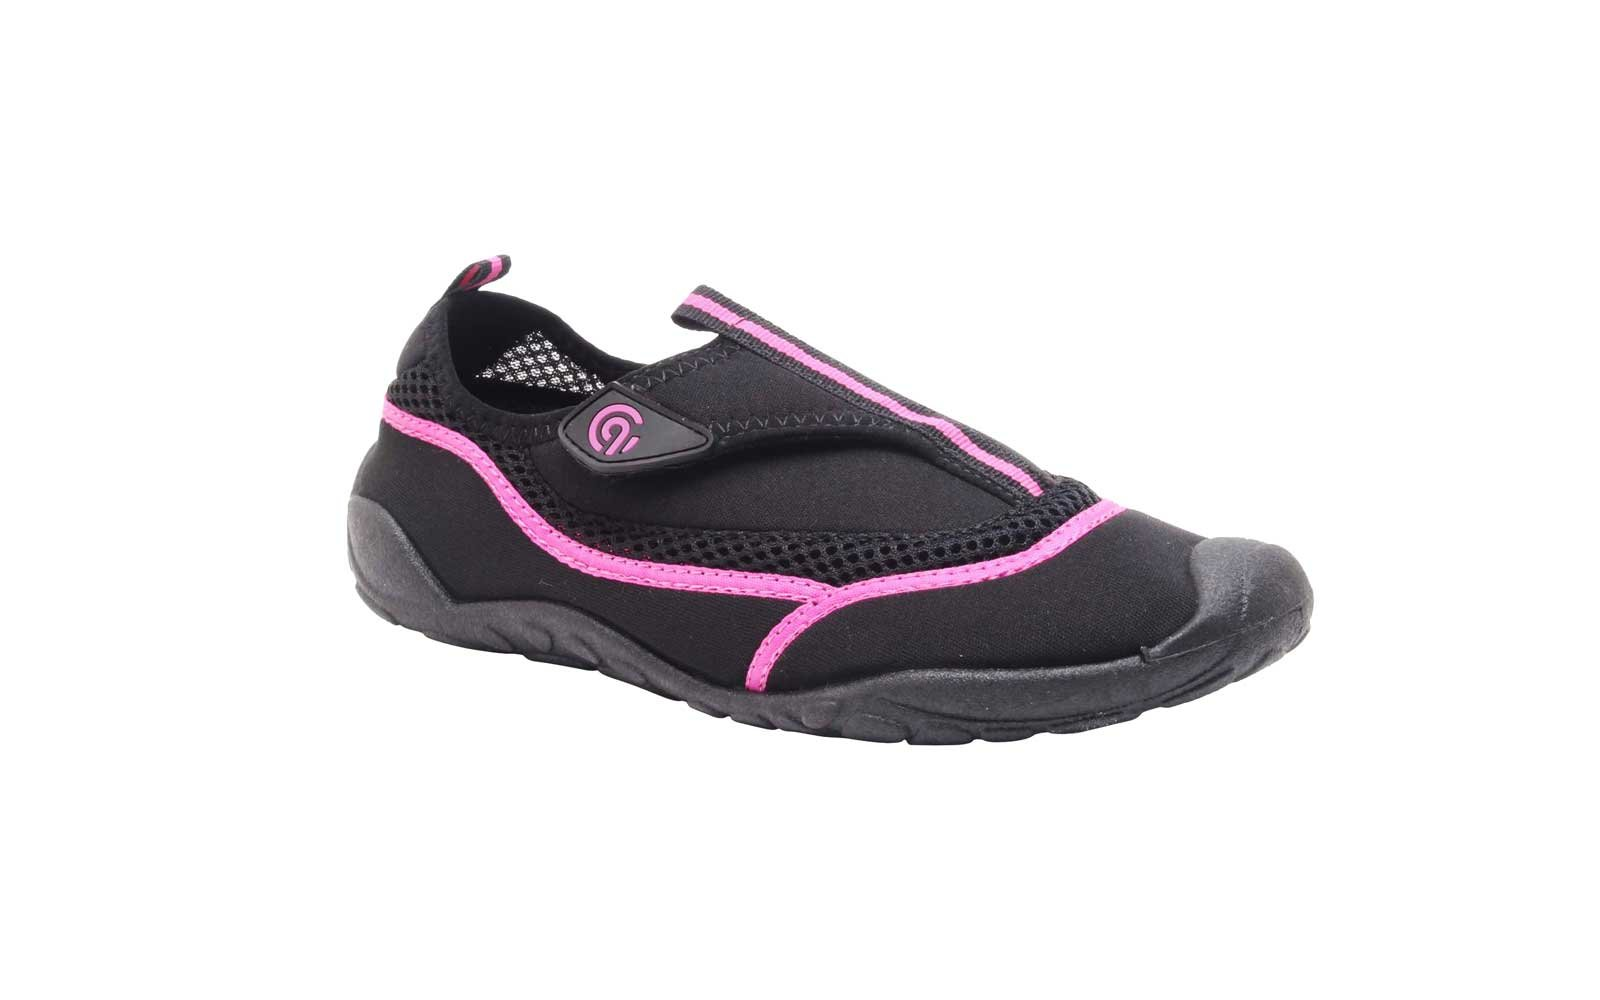 0c75a1d875 C9 Champion Women s  Lucille  Water Shoes